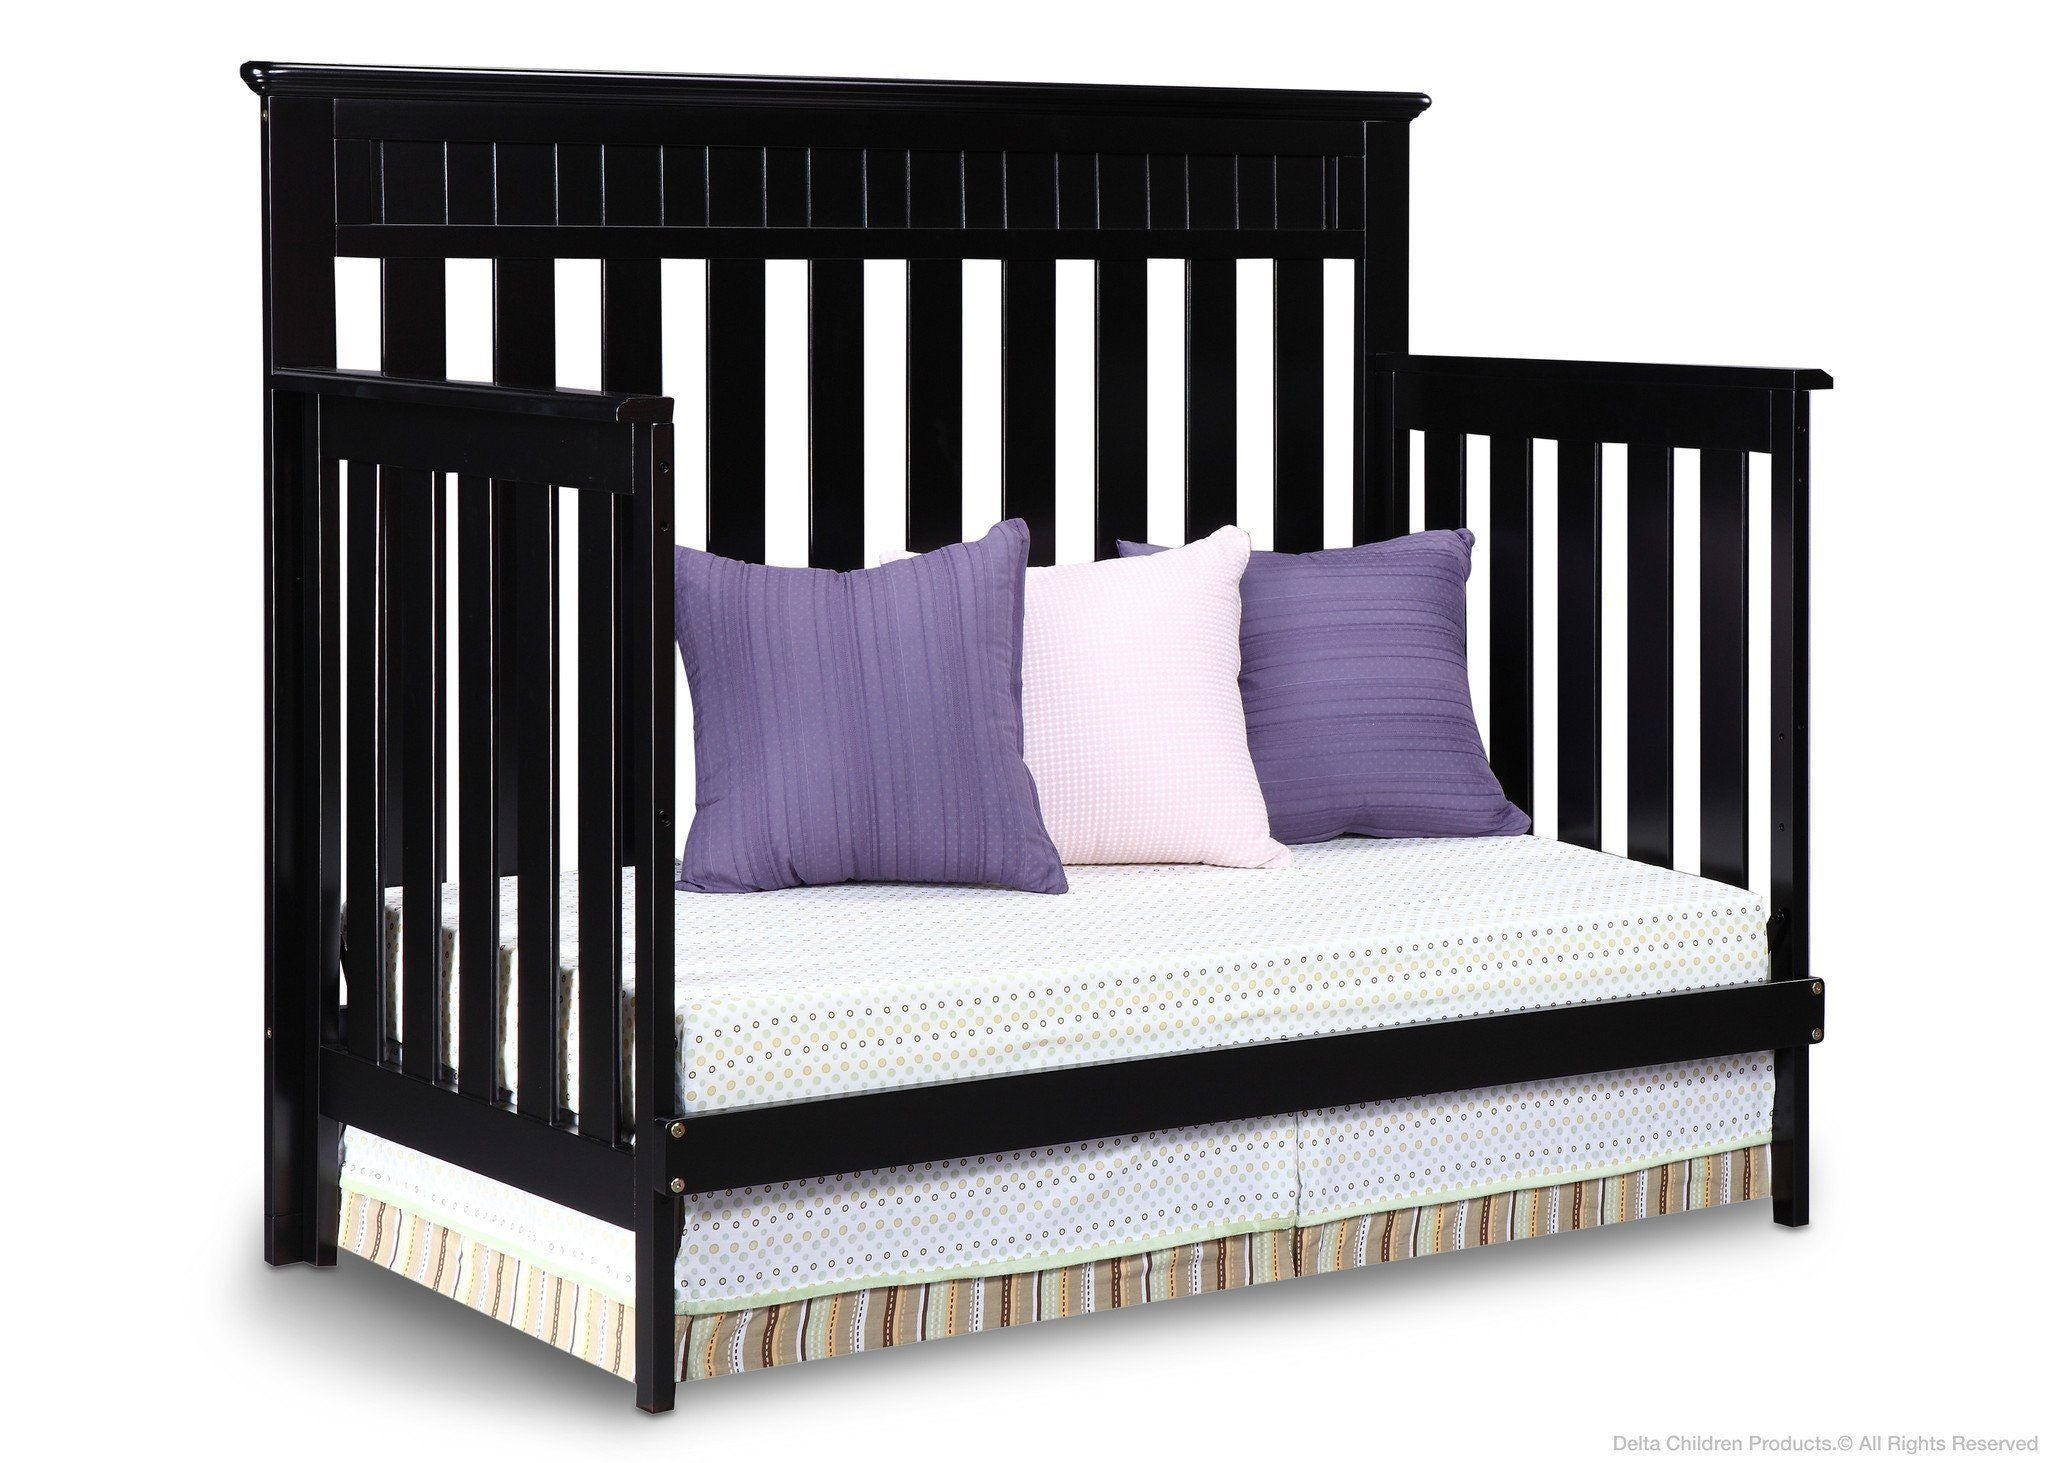 Delta Children Black (001) Chalet 4-in-1, Day Bed Conversion a4a